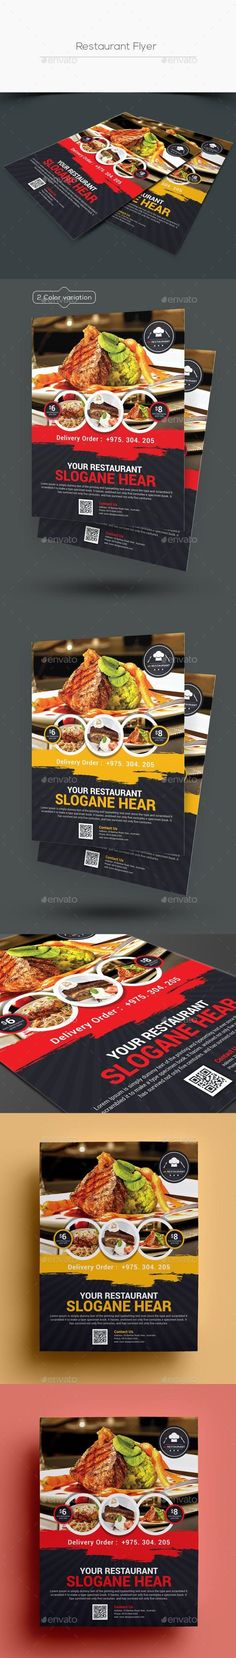 restaurant poster Restaurant Flyer by Details Fully layered Adobe Photoshop 1 Layout Designs amp; 2 Color Fully layered PSD print size: inchesbleed a Flyer Design Templates, Menu Design, Print Templates, Flyer Template, Layout Design, Letter Templates, Restaurant Poster, Restaurant Menu Template, Seafood Restaurant